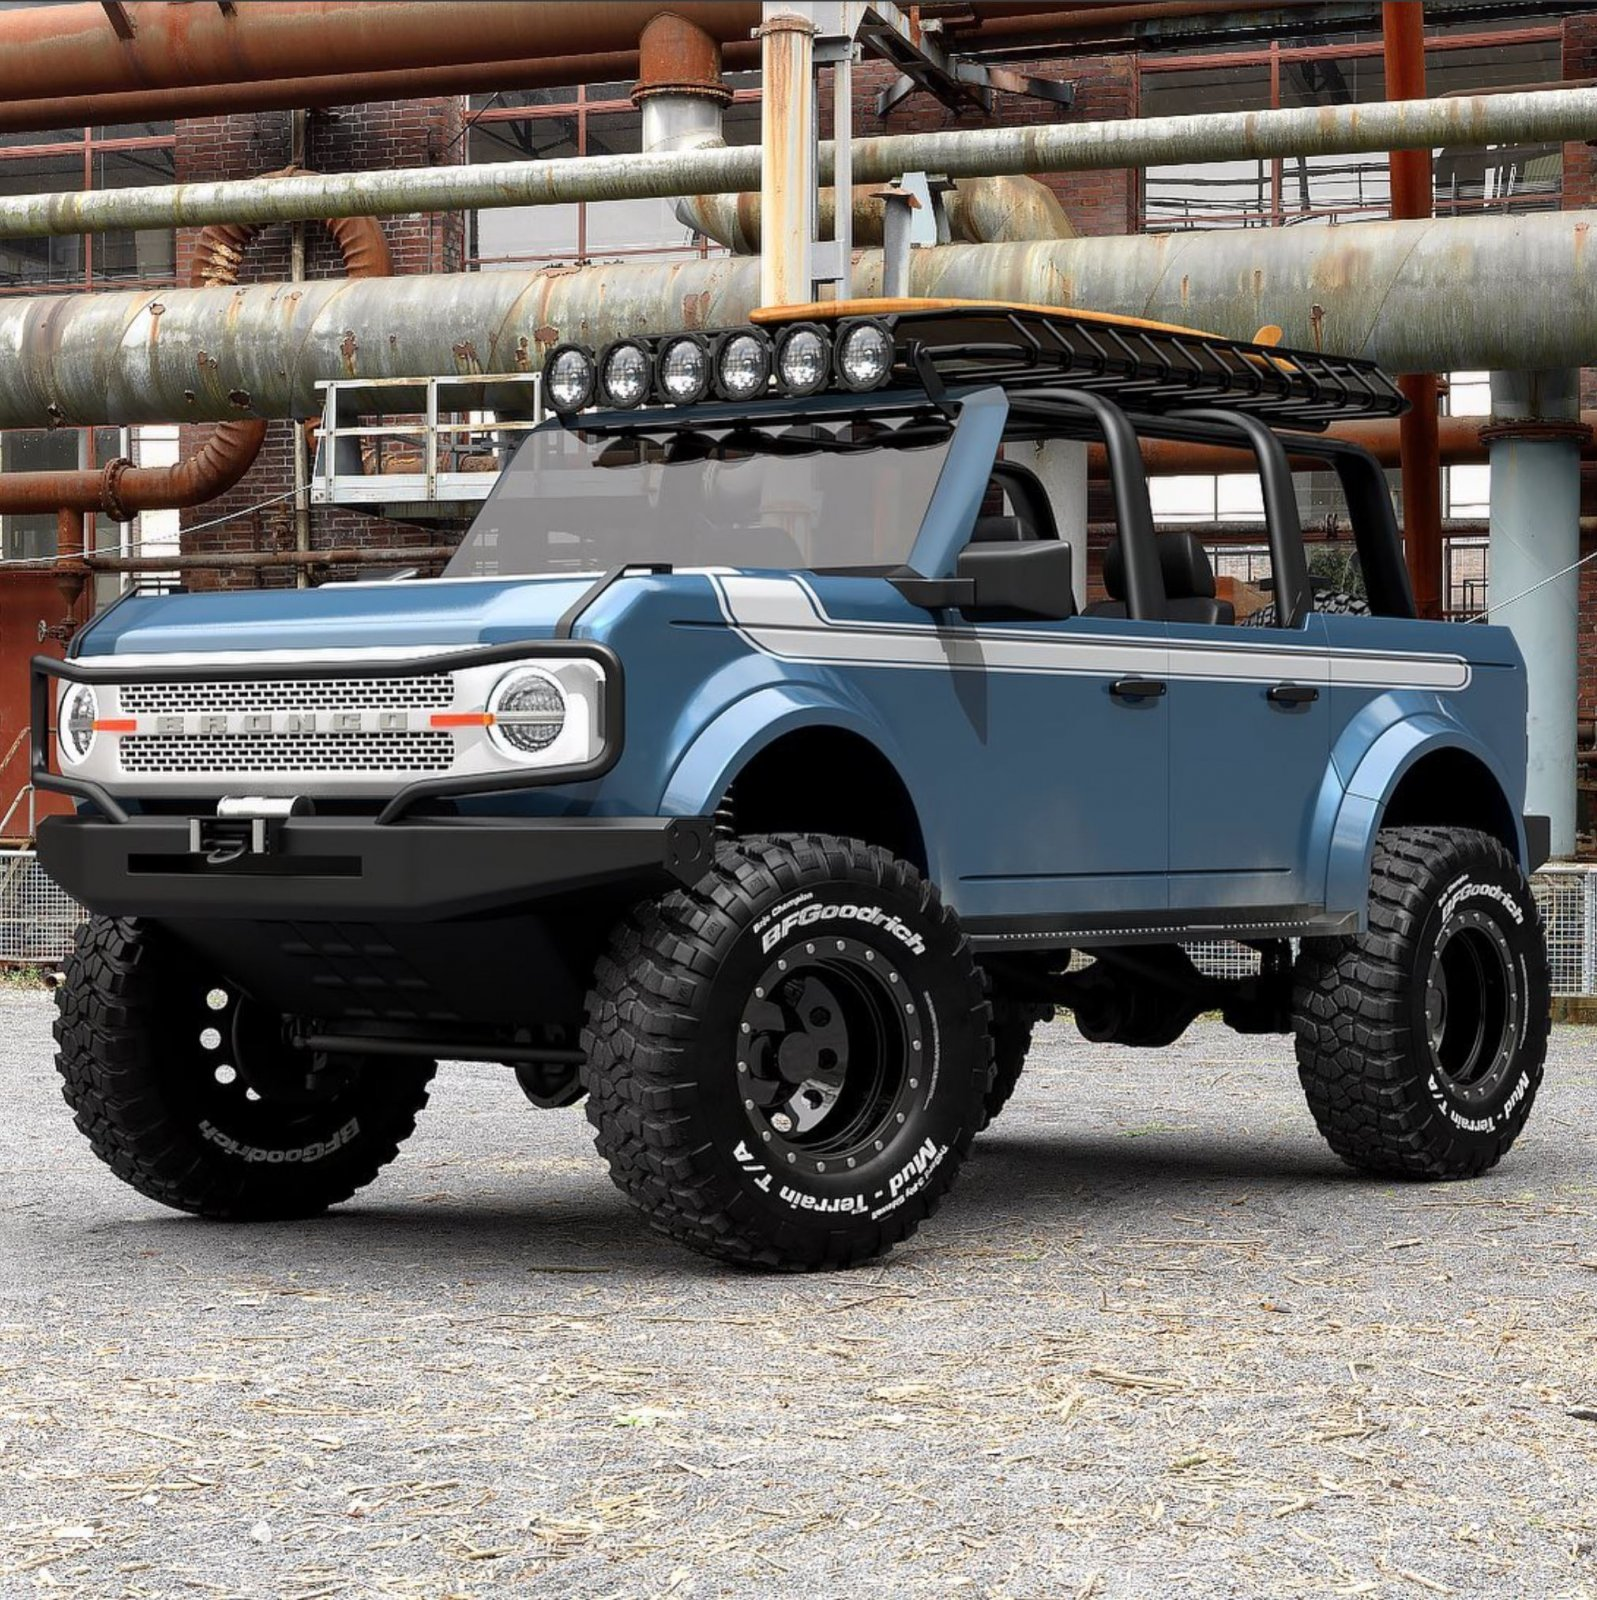 2021 Ford Bronco 4 Door By Maxlider Motors 1.JPG